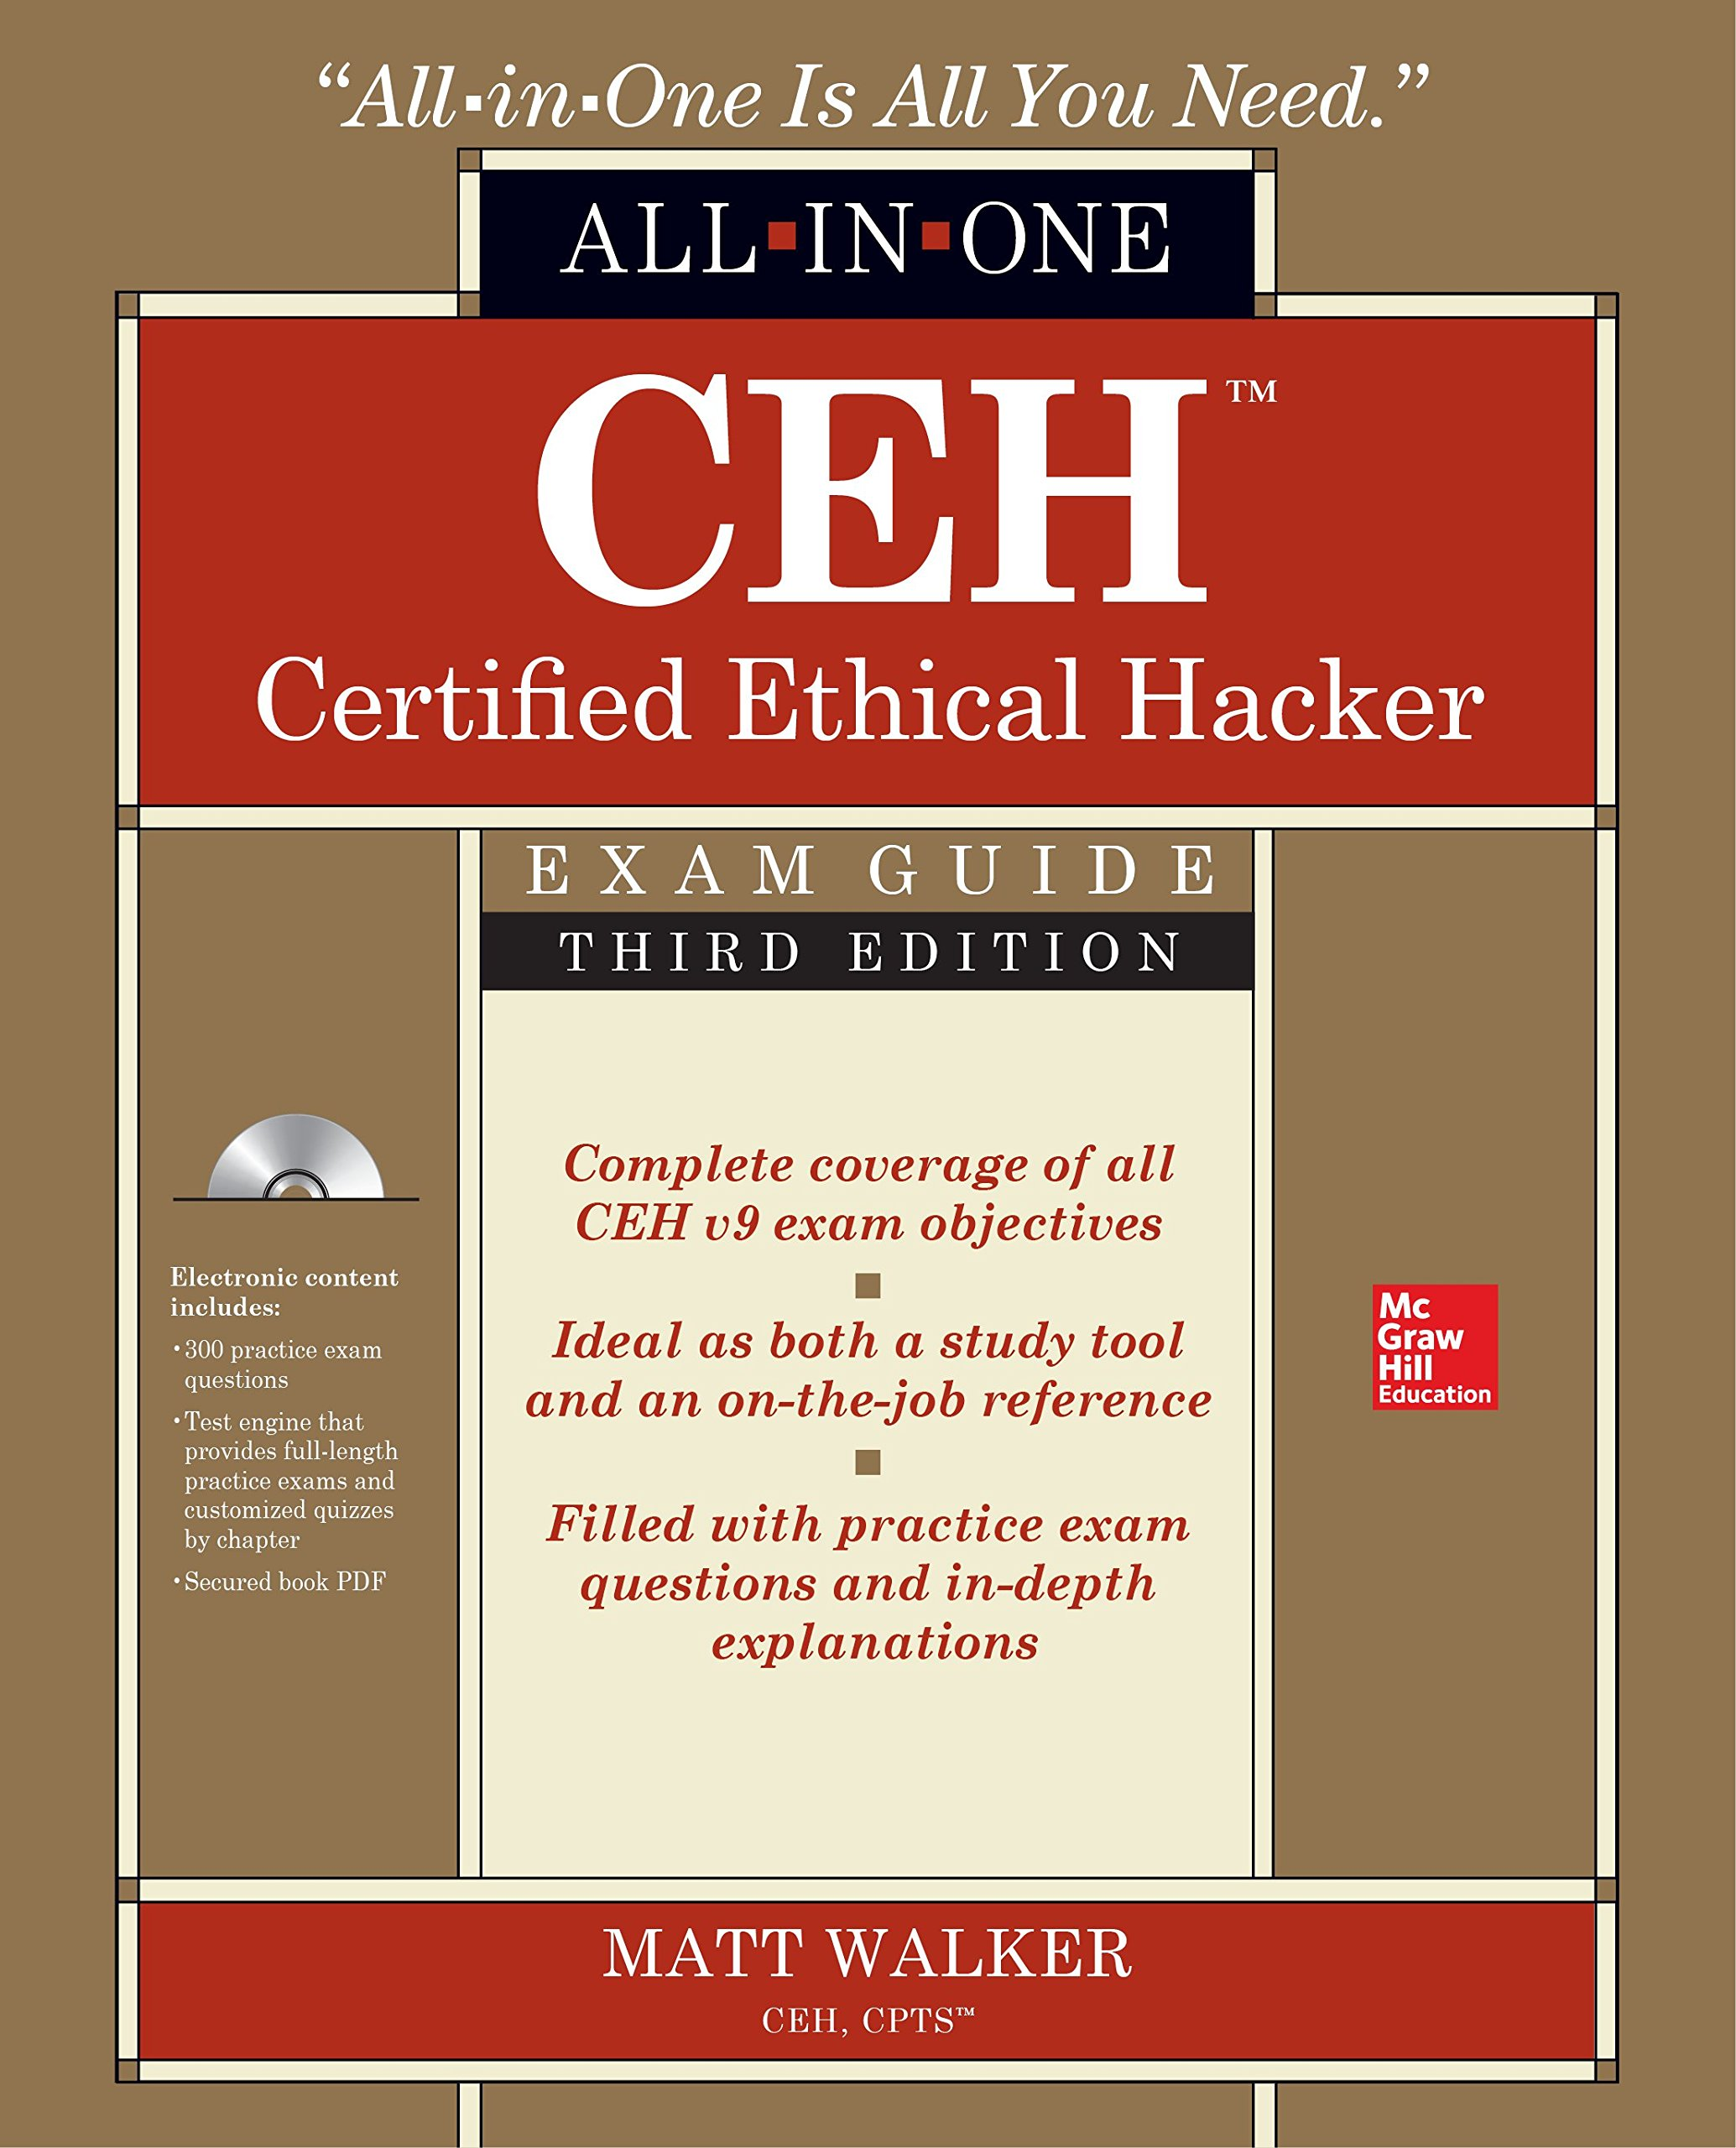 Ceh certified ethical hacker all in one exam guide third edition ceh certified ethical hacker all in one exam guide third edition oracle press amazon matt walker 9781259836558 books xflitez Image collections